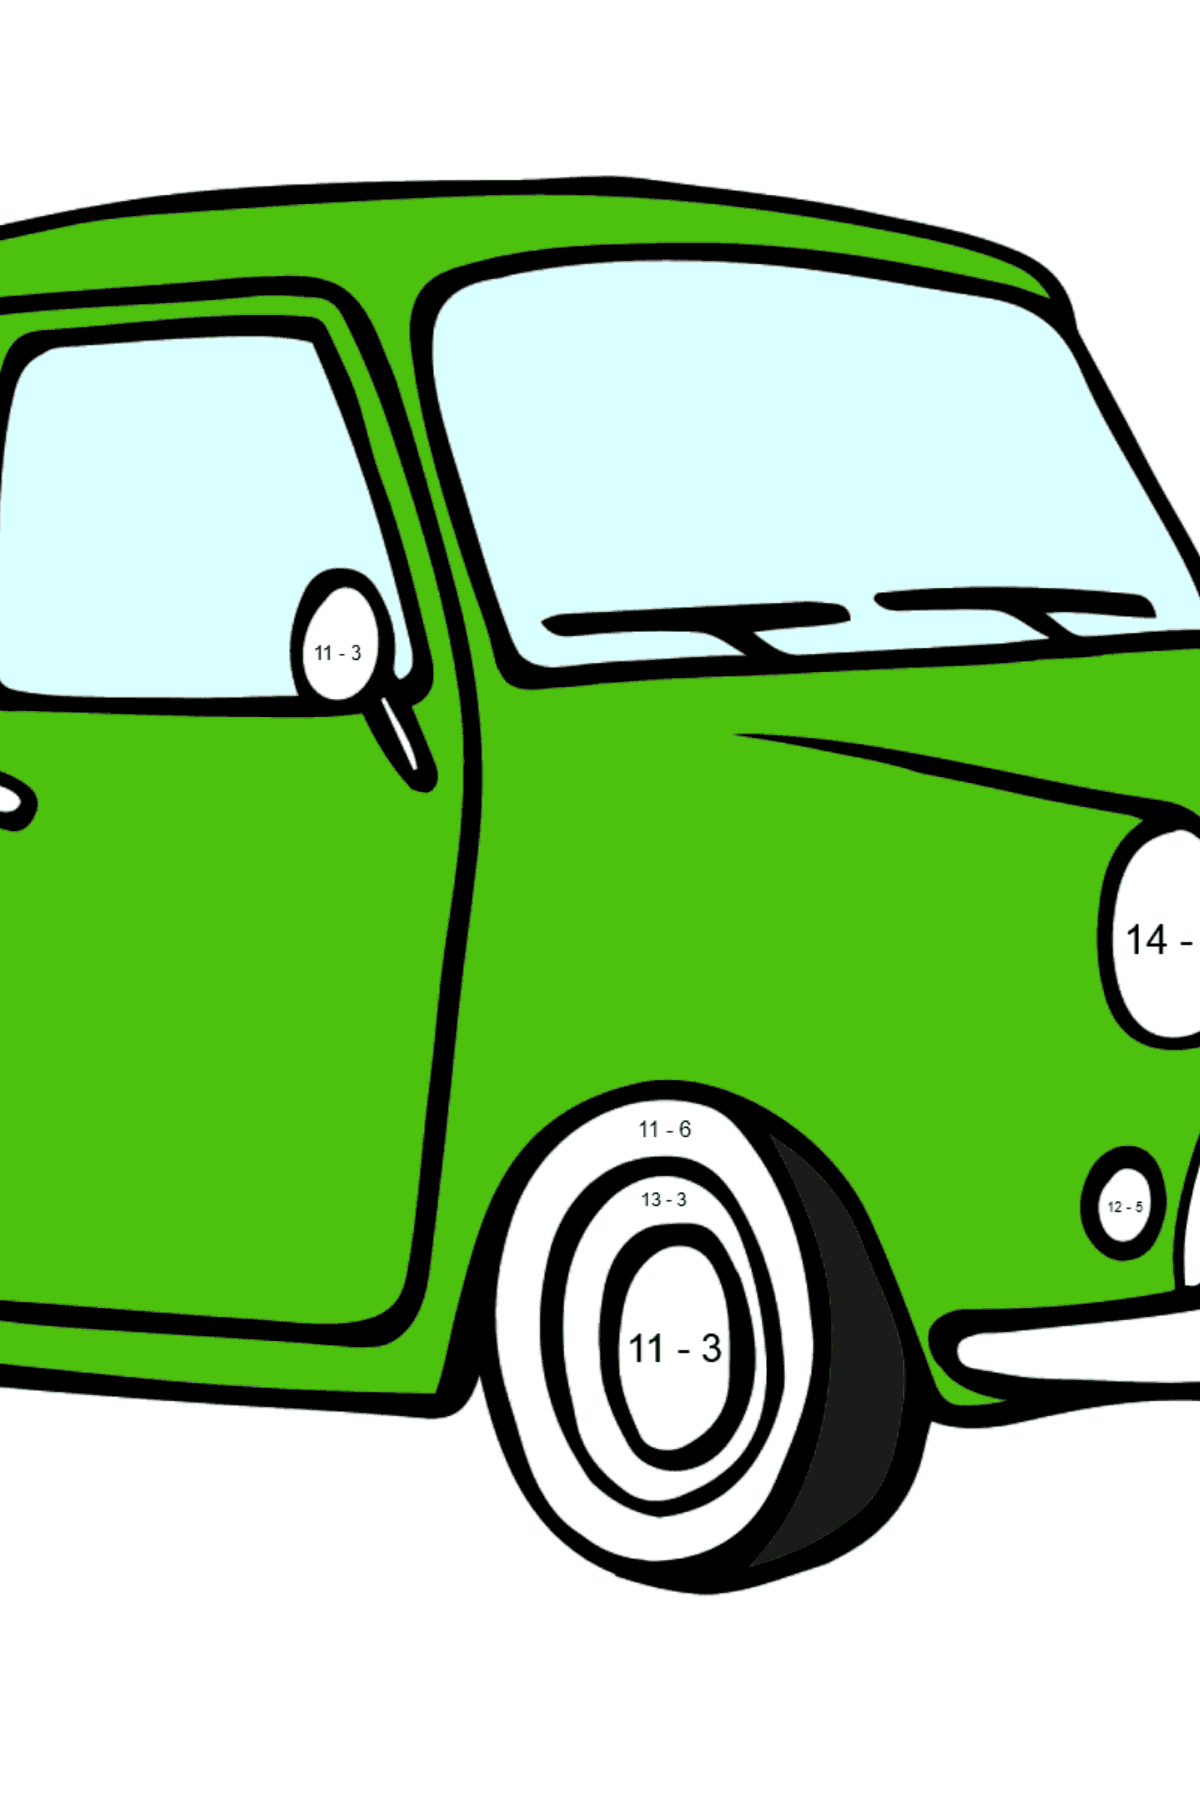 Fiat 500 coloring page (green car) - Math Coloring - Subtraction for Kids